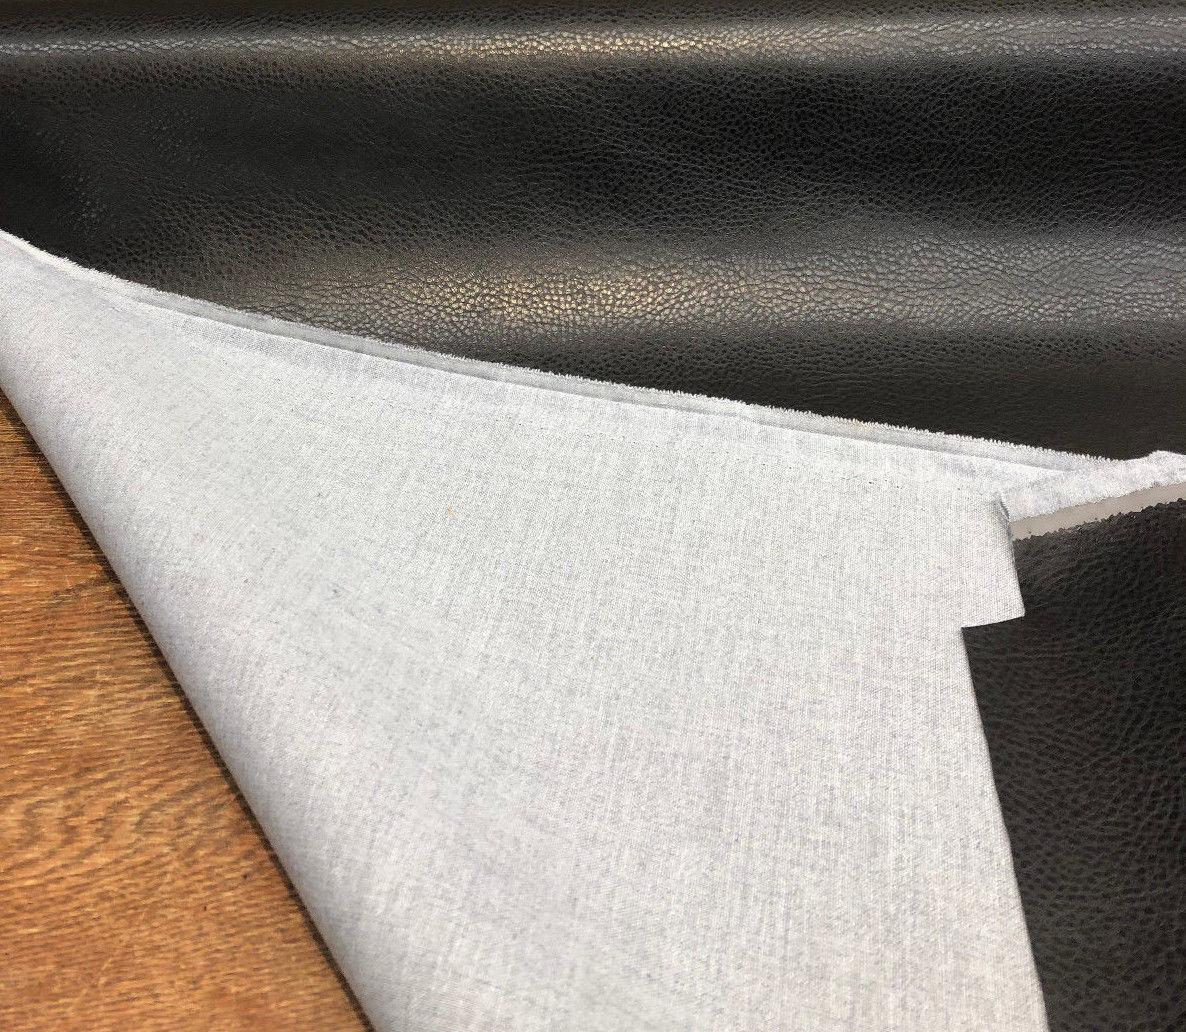 Rodeo Black Textured Vinyl Upholstery Fabric With Backing By The